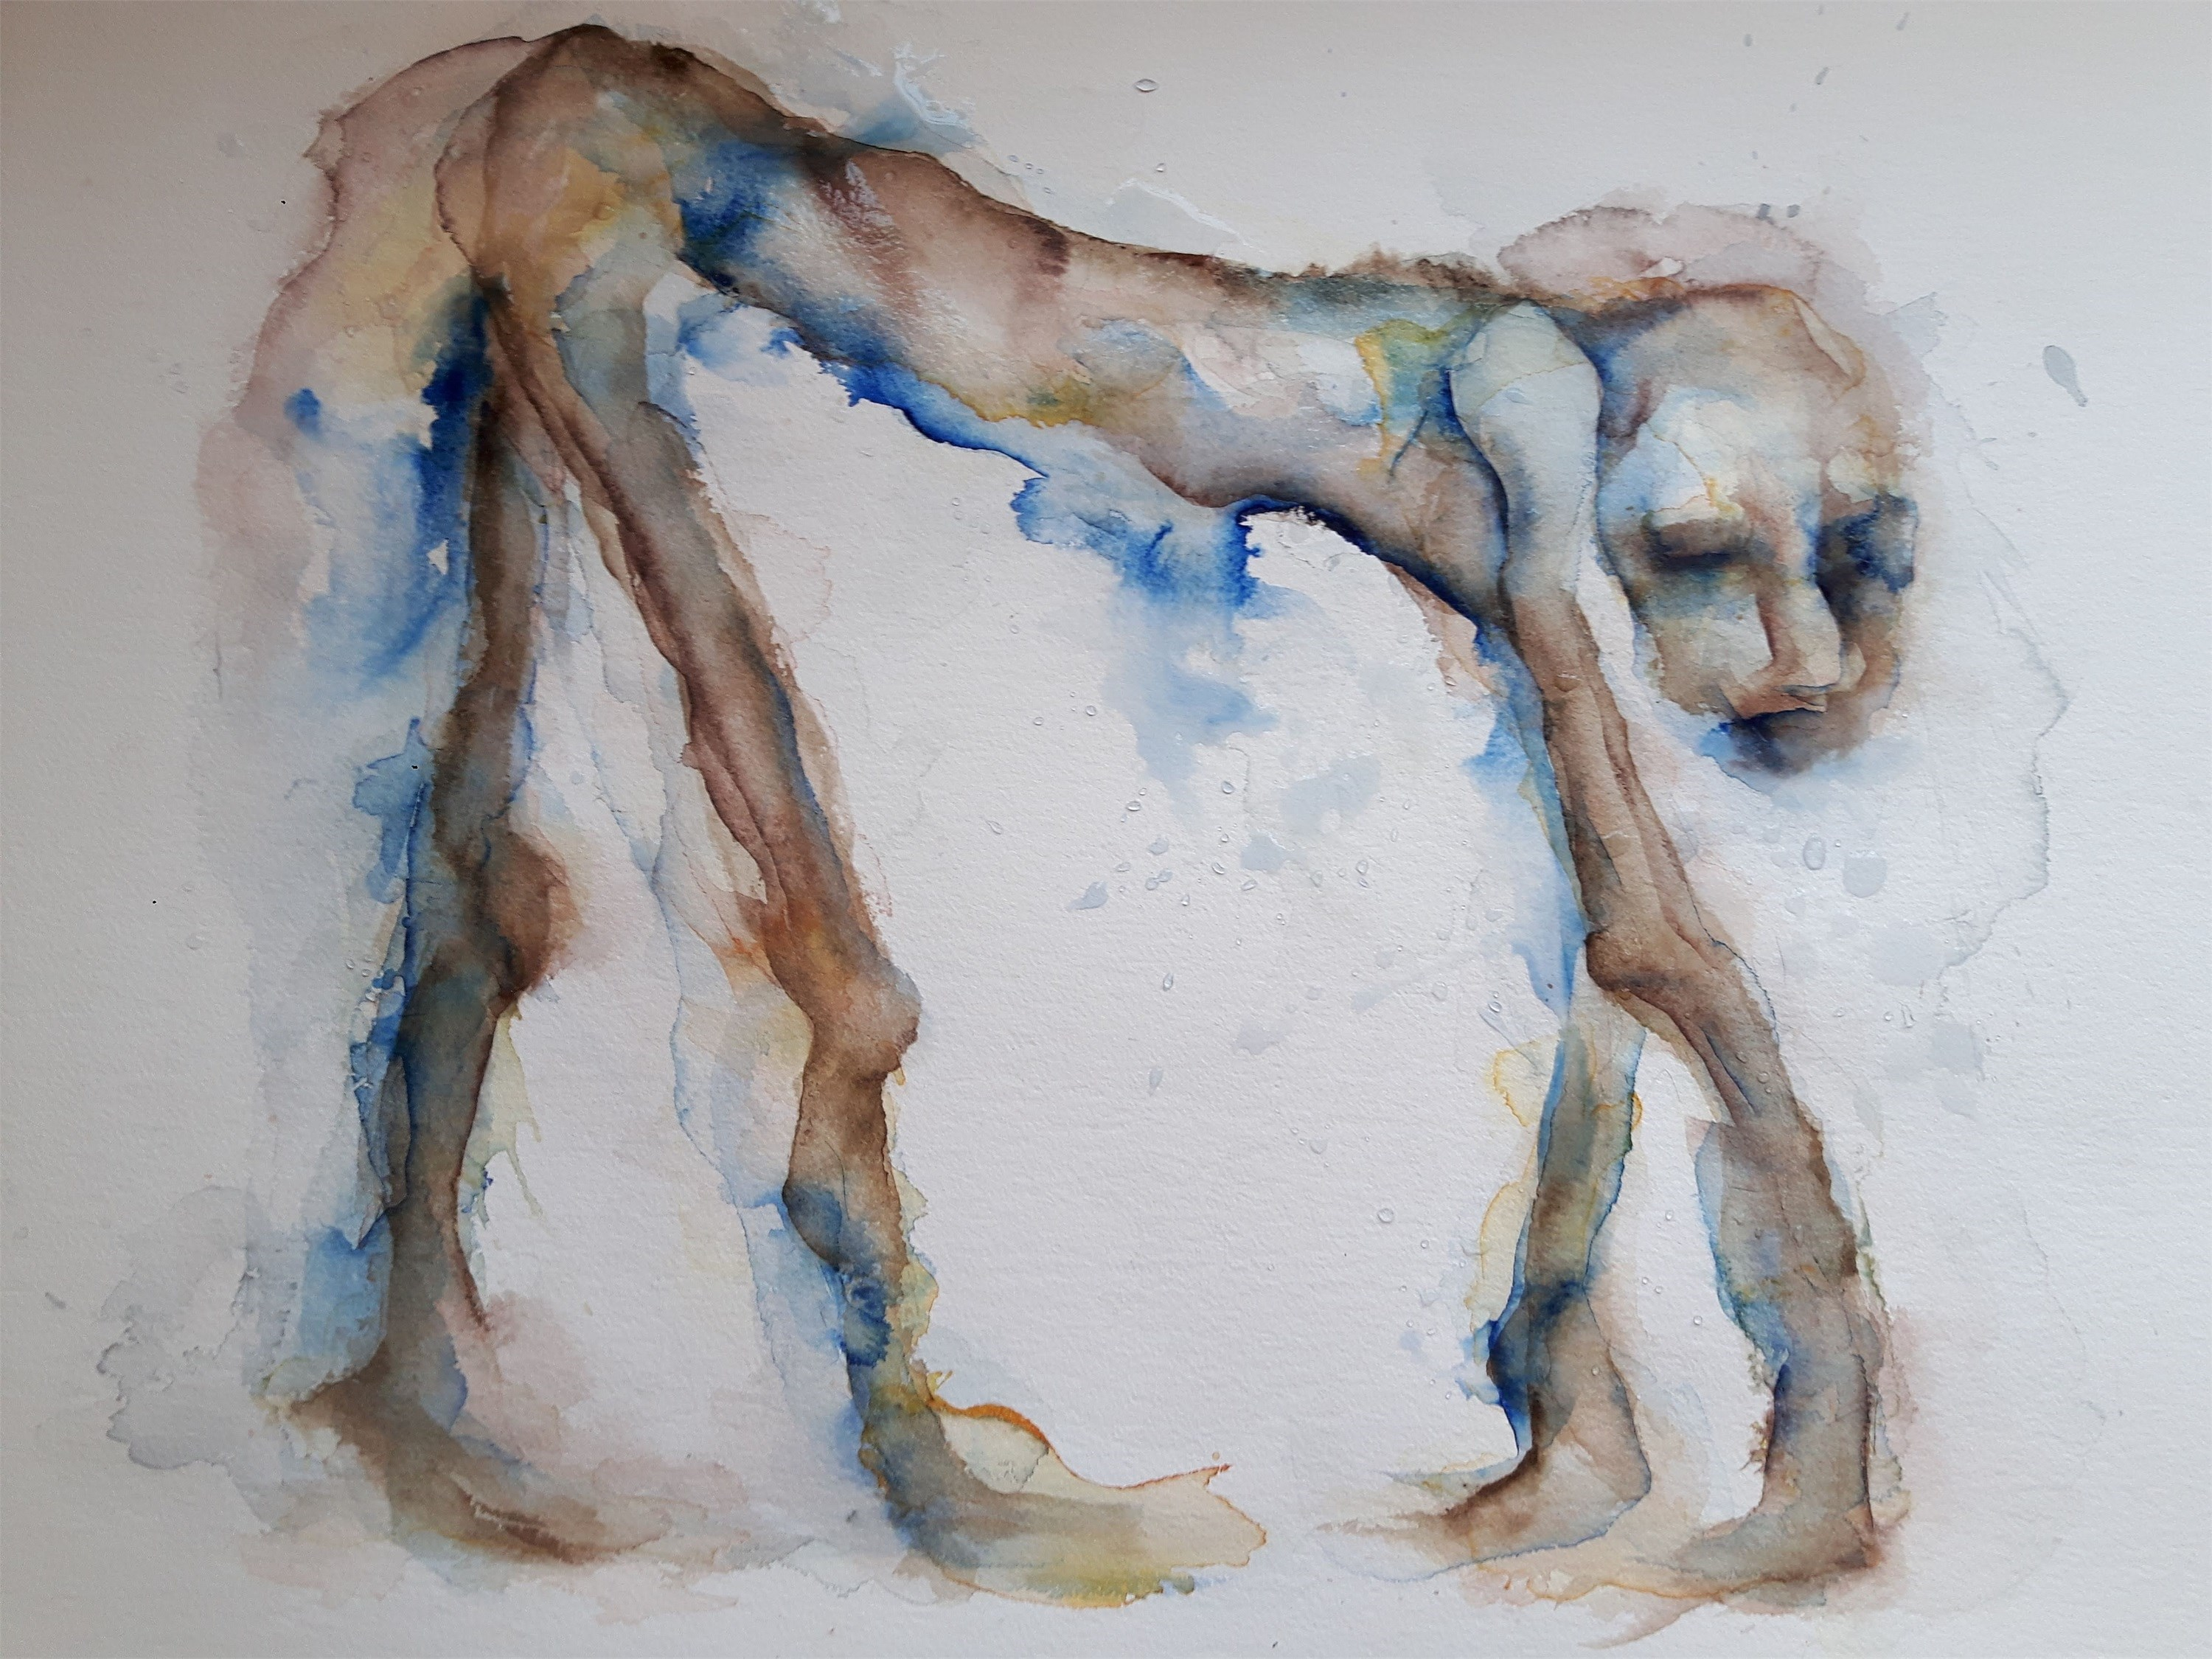 Homem cão, original Man Watercolor Painting by Adelaide Morgado